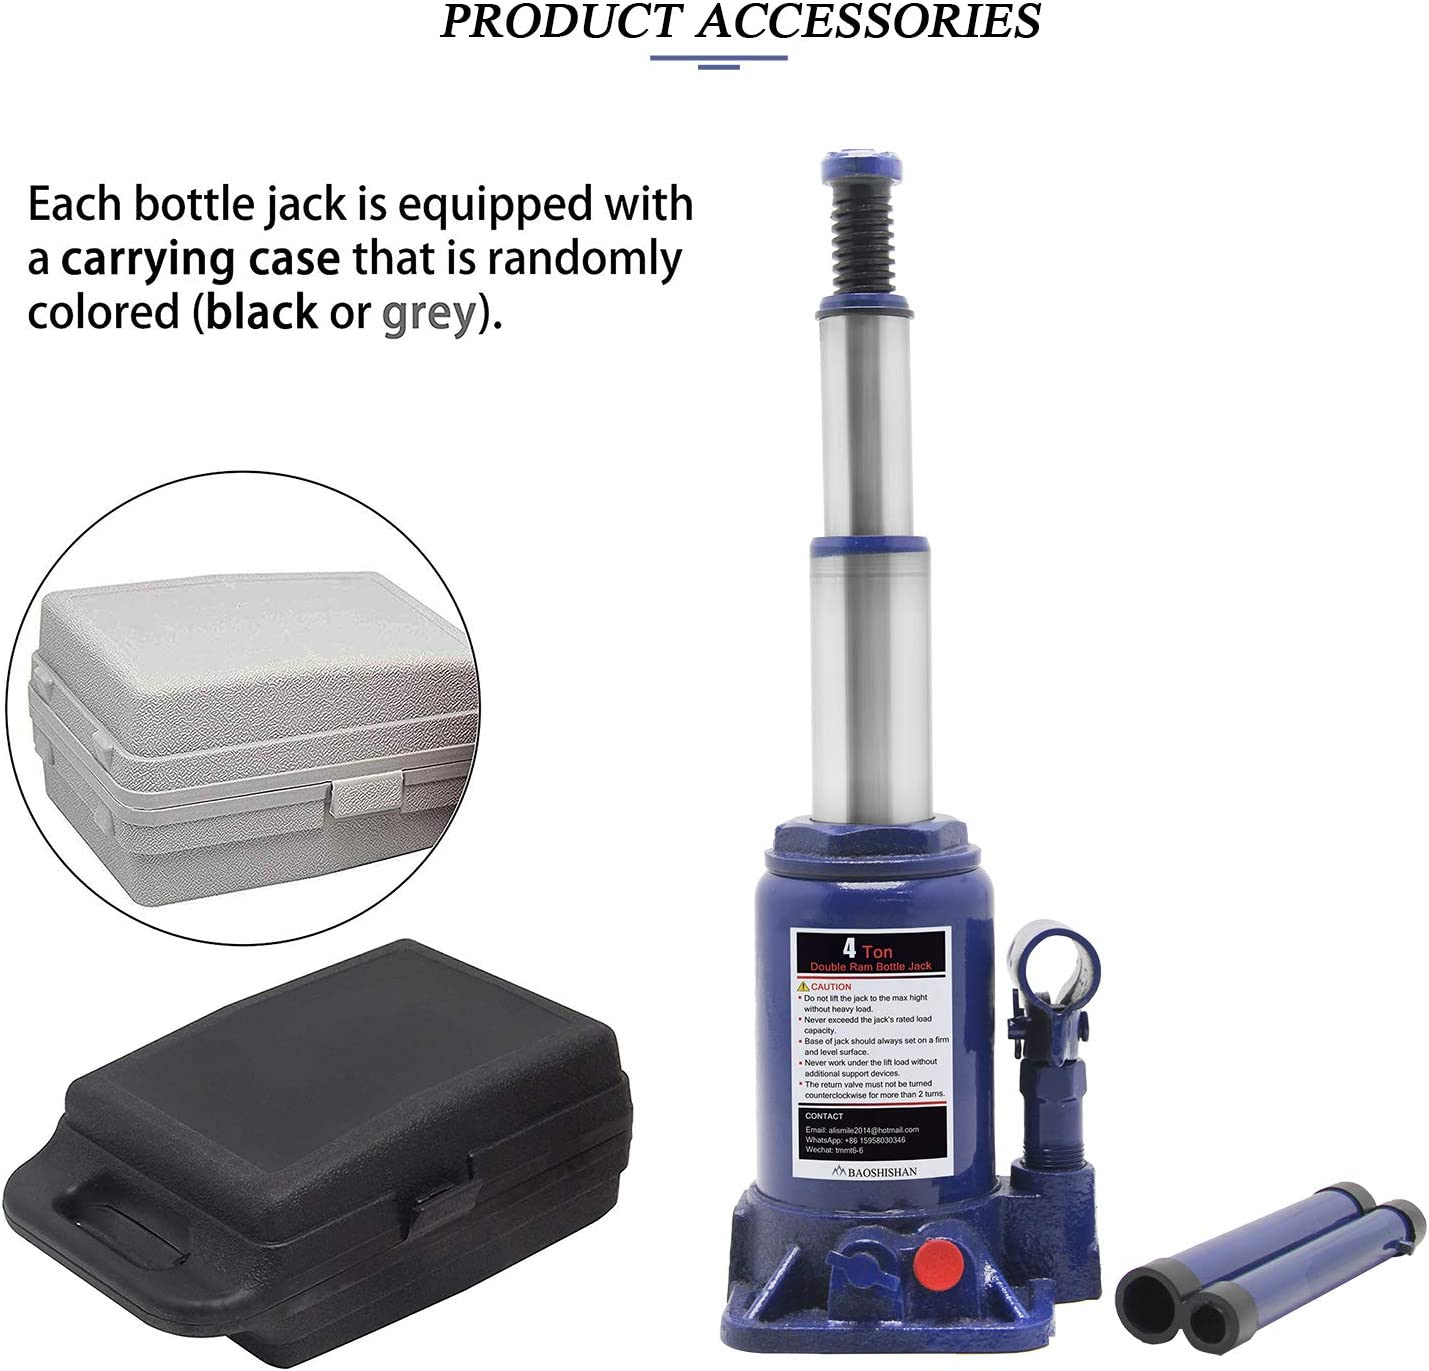 Total Height 15.69in BAOSHISHAN 4 Ton Double Ram Bottle Jack Portable Hydraulic Car/Jack with Carrying Case